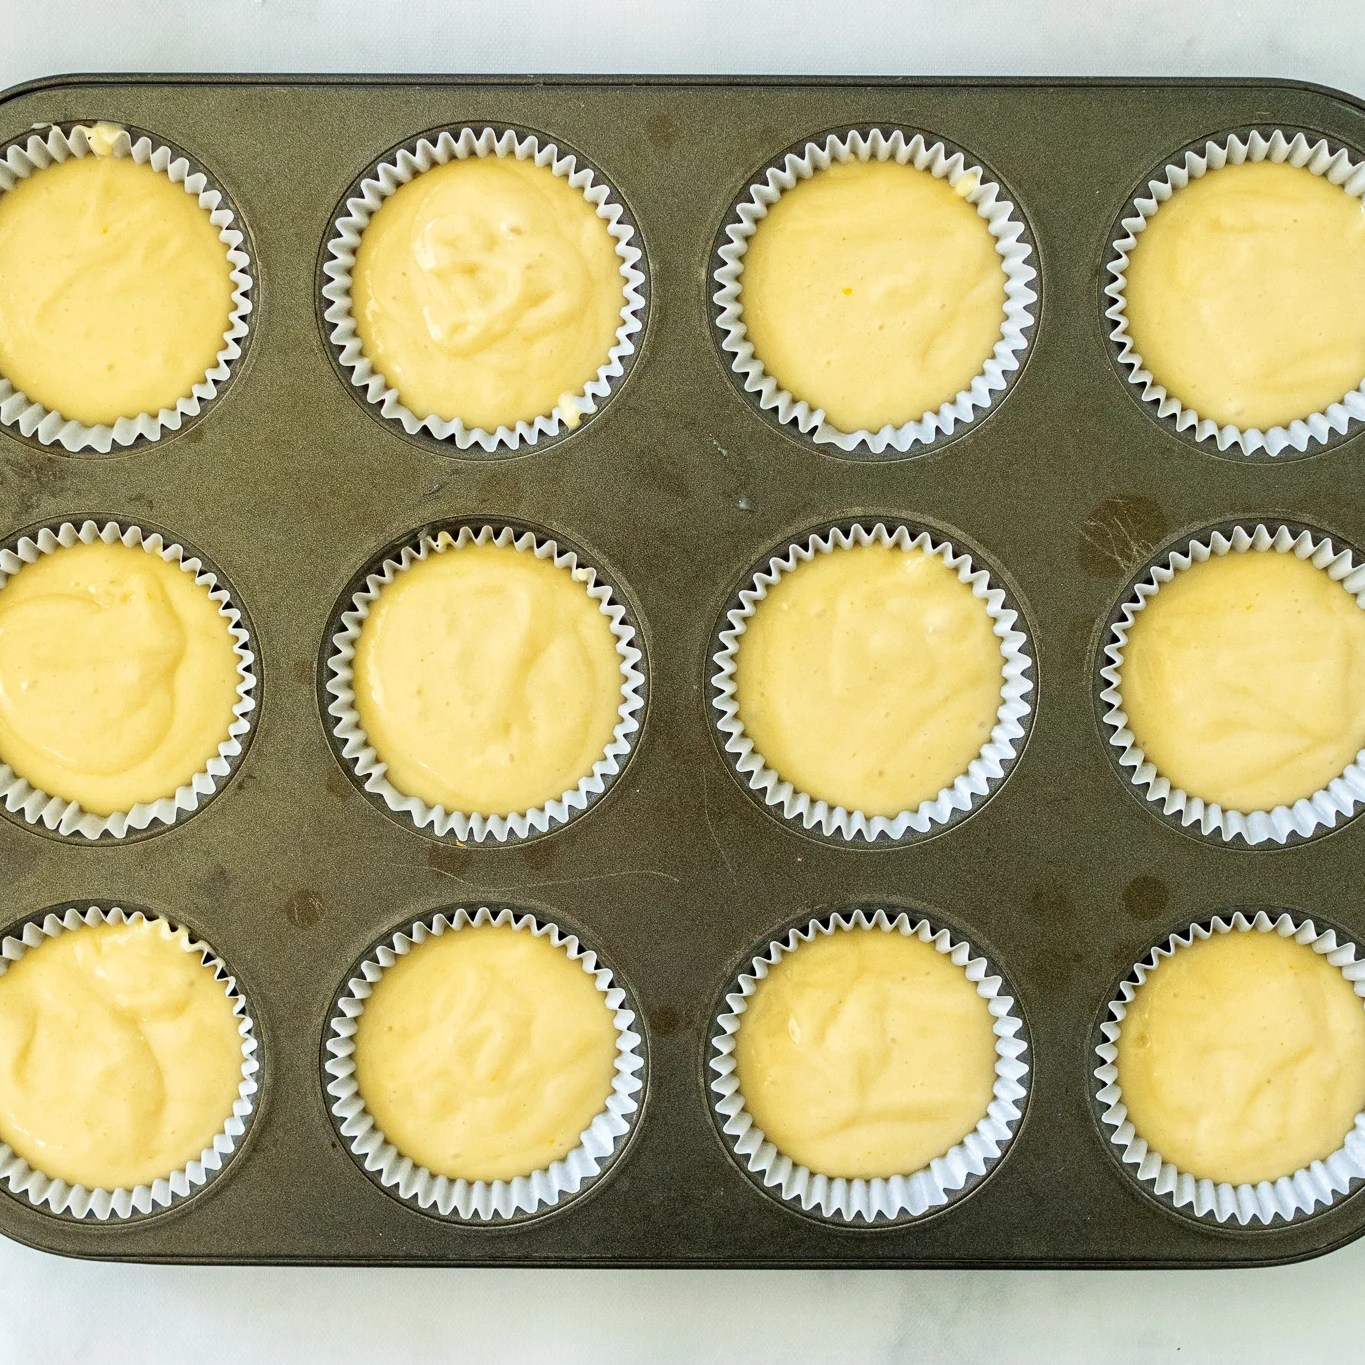 cupcake mixture in molds